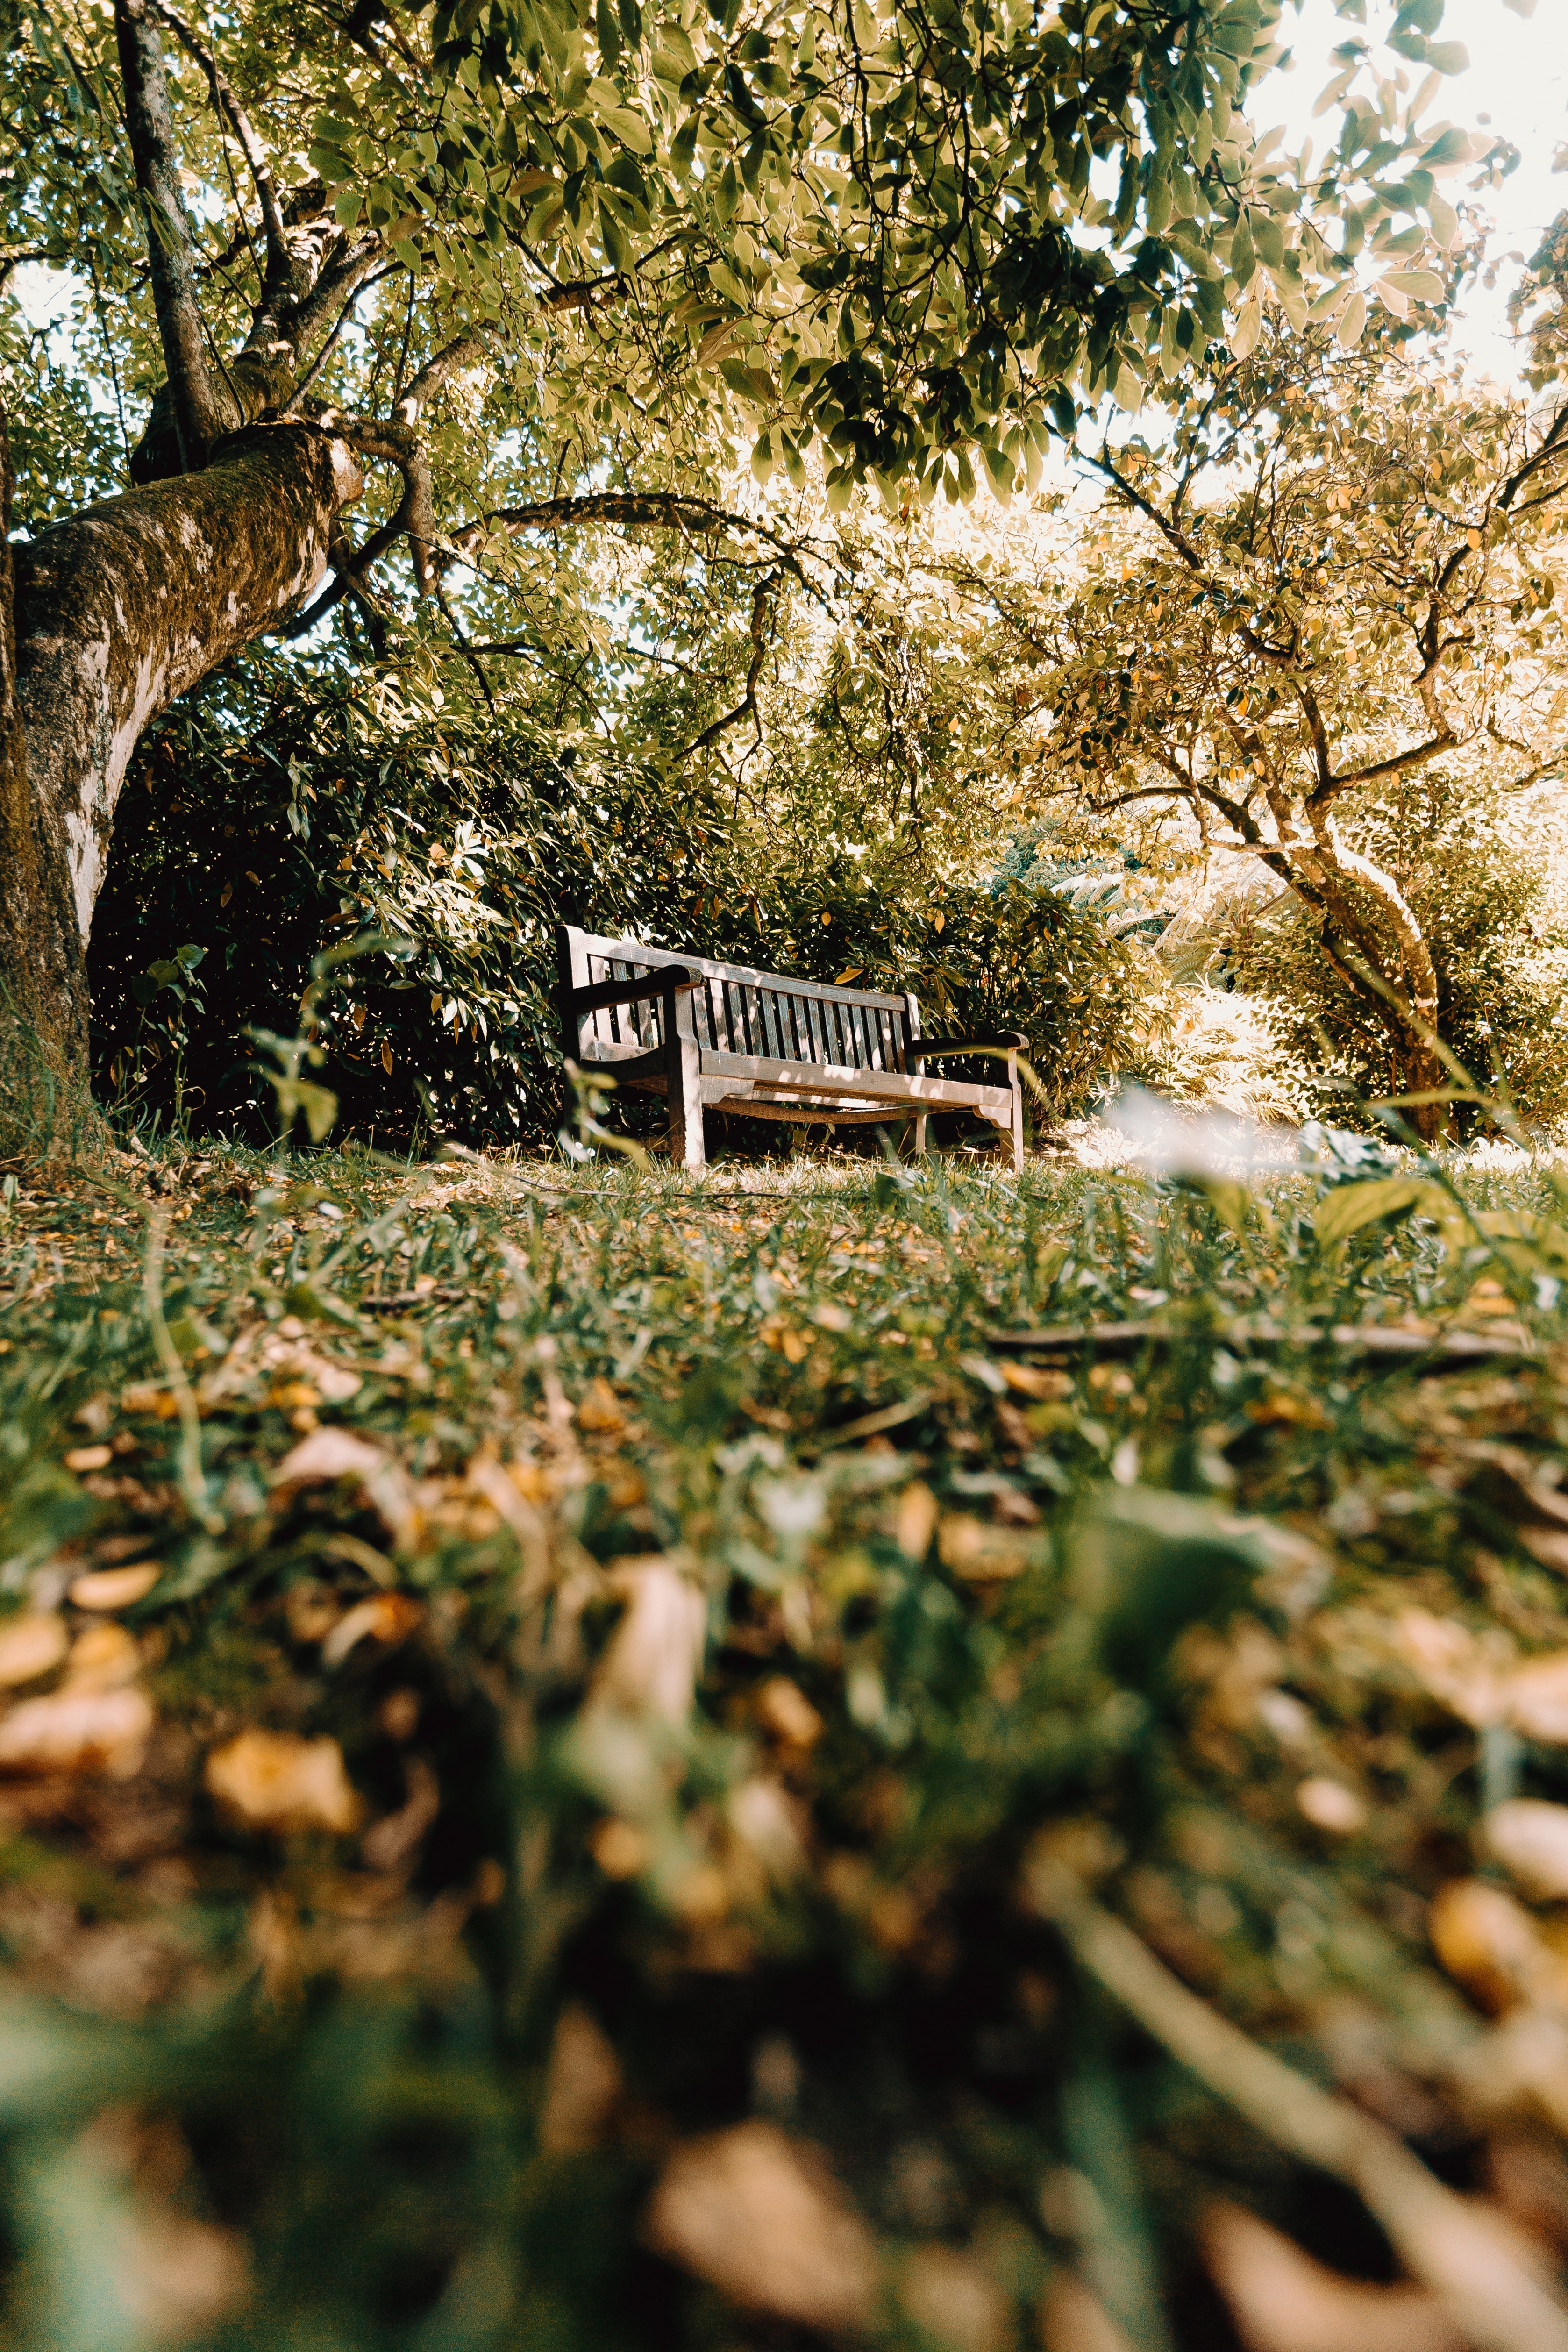 155825 Screensavers and Wallpapers Bench for phone. Download Nature, Trees, Miscellanea, Miscellaneous, Bench, Shop, Store pictures for free